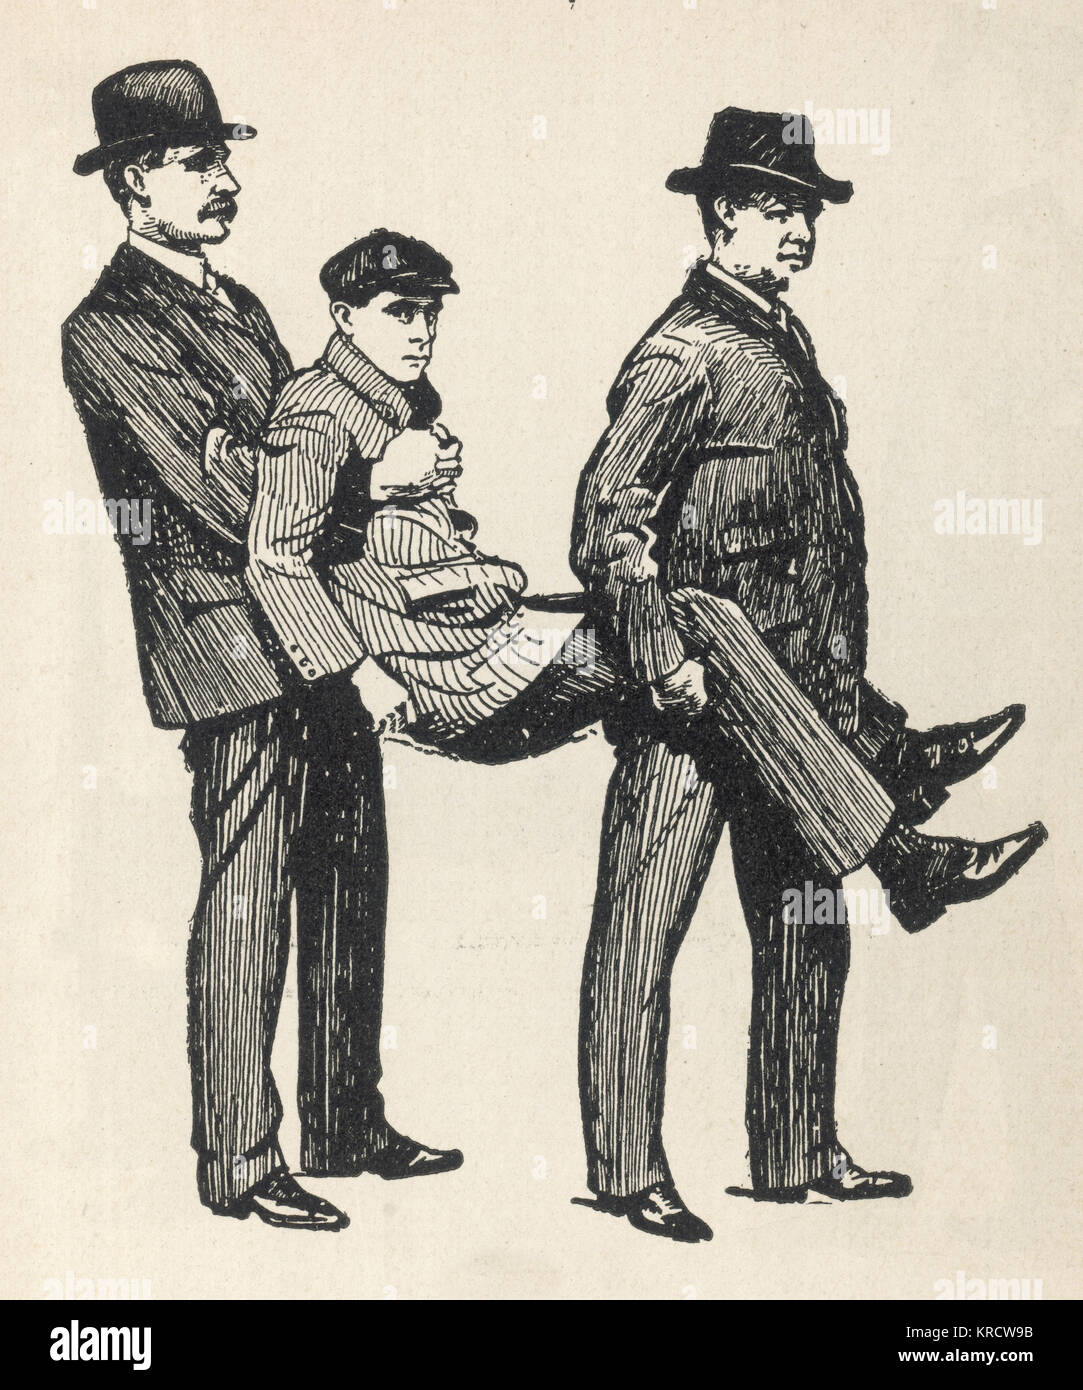 First aid, the Fore and Aft Method of carrying a patient where no stretcher is available. Date: 1908 Stock Photo